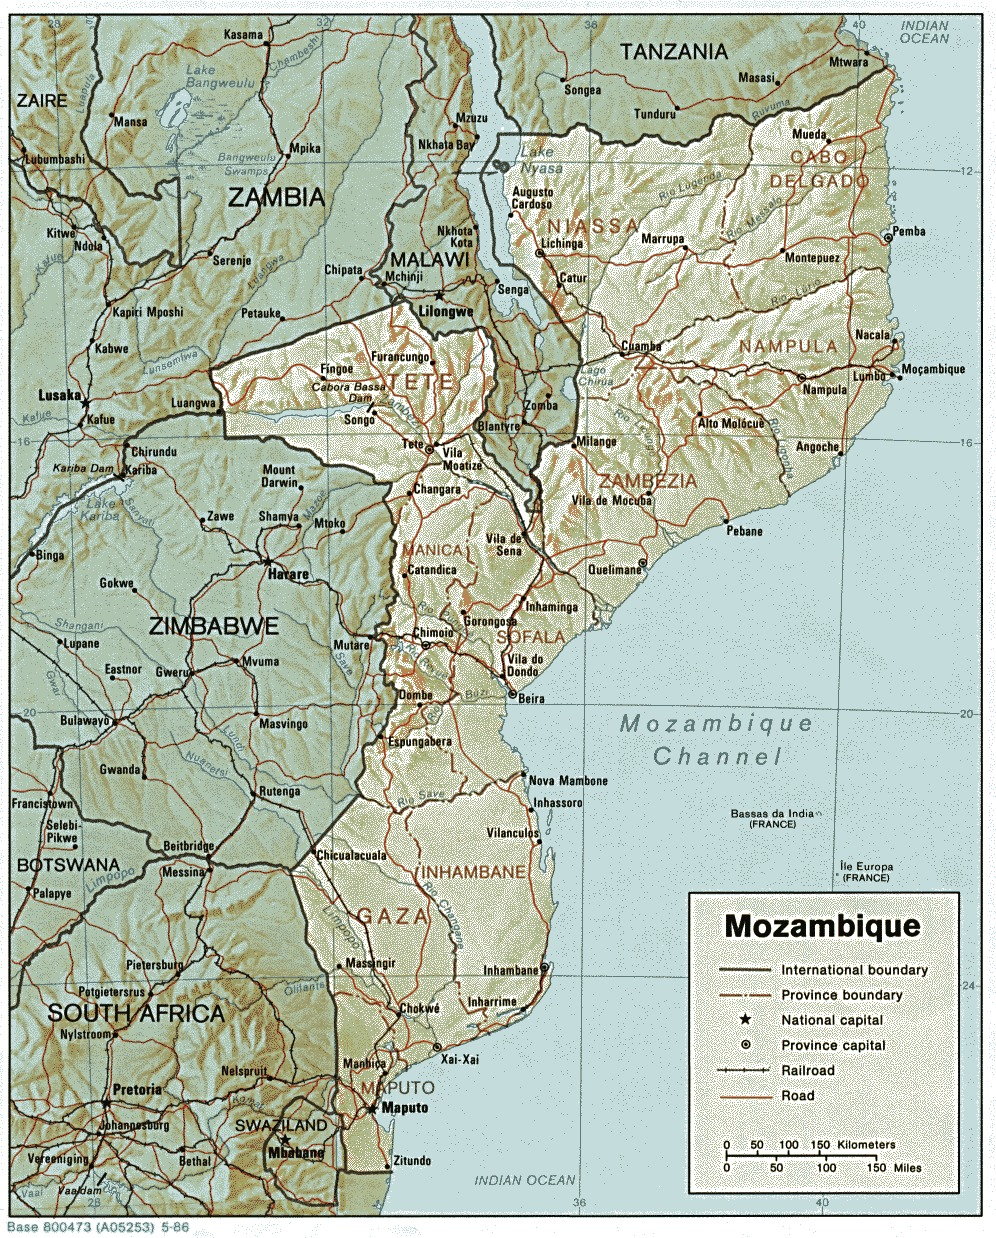 Mozambique Shaded Relief Map